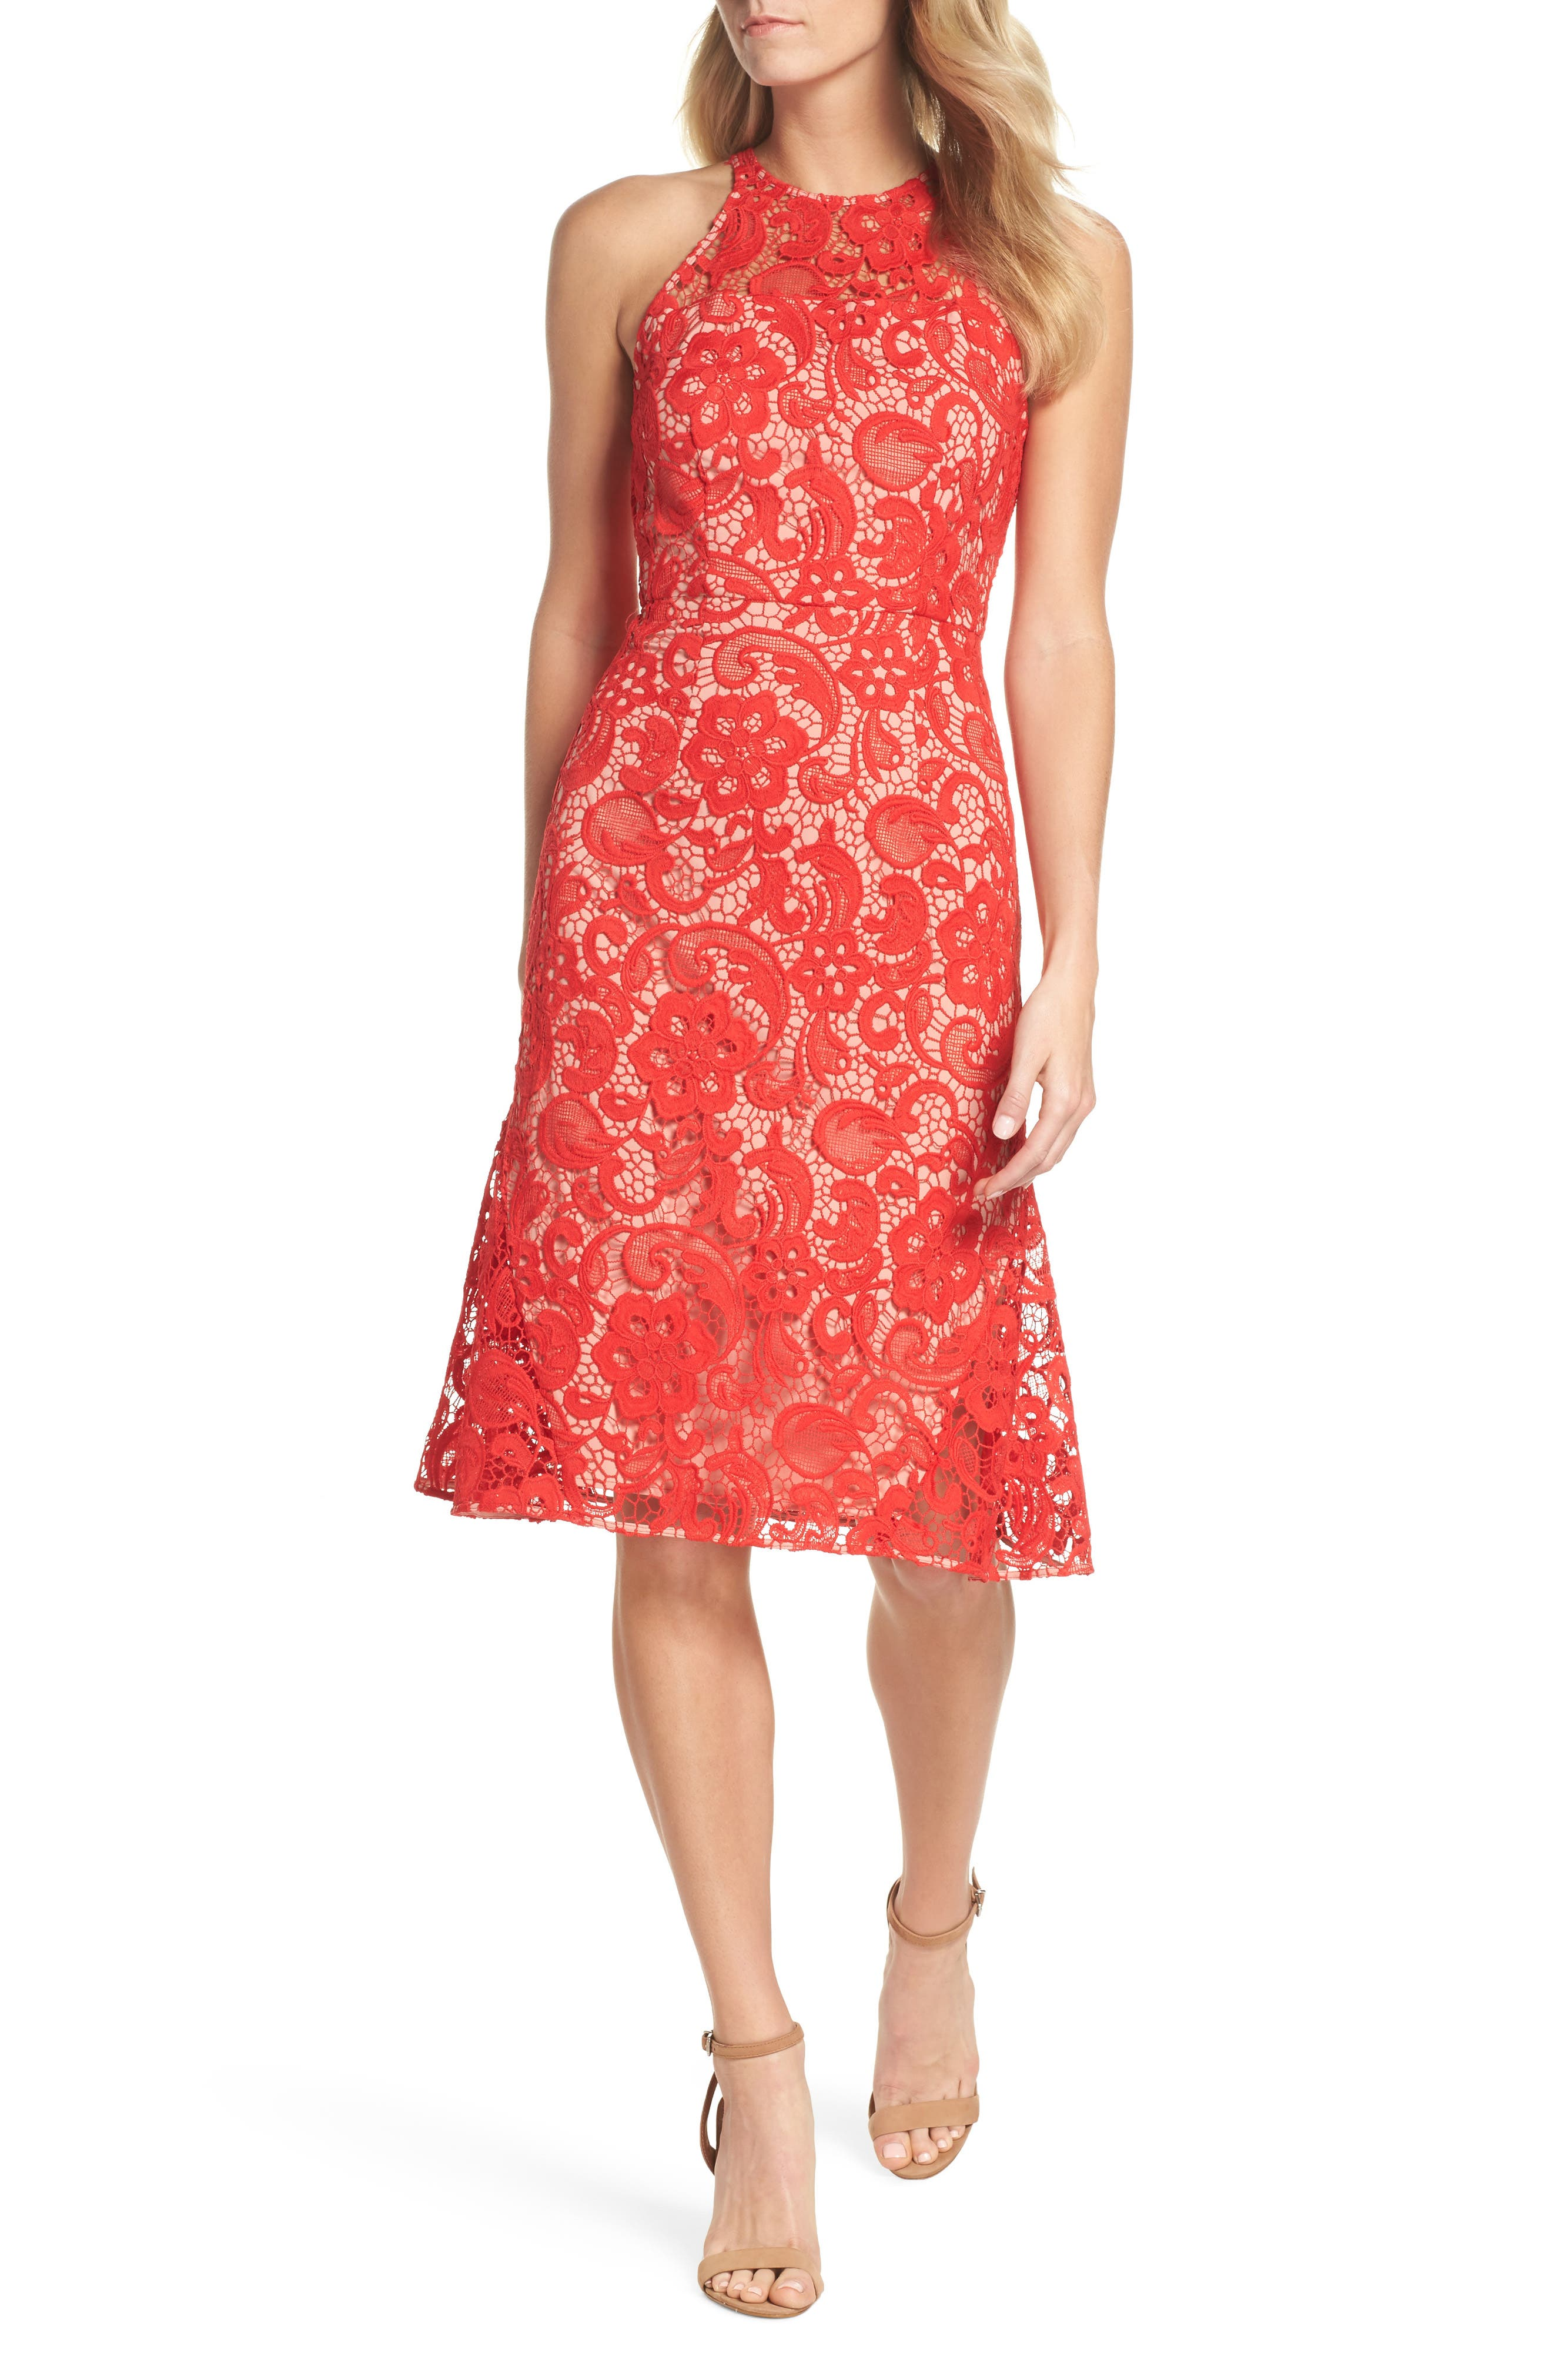 Carnation Lace Dress,                         Main,                         color, Red Fiery